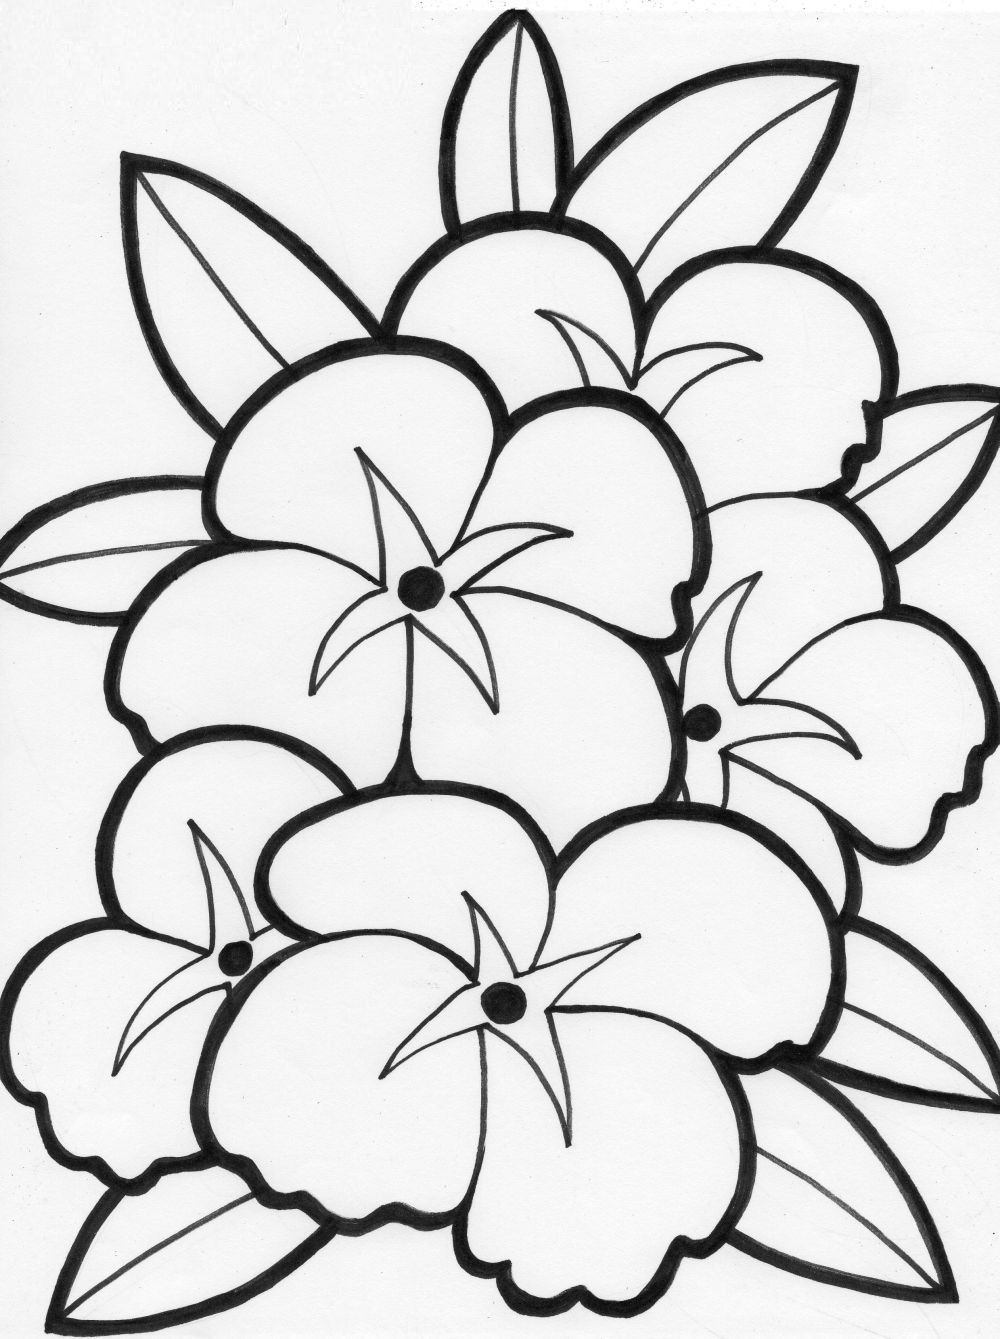 Coloring Pages Of Flowers For Teenagers Difficult 05 Adult - Coloring-pages-with-flowers